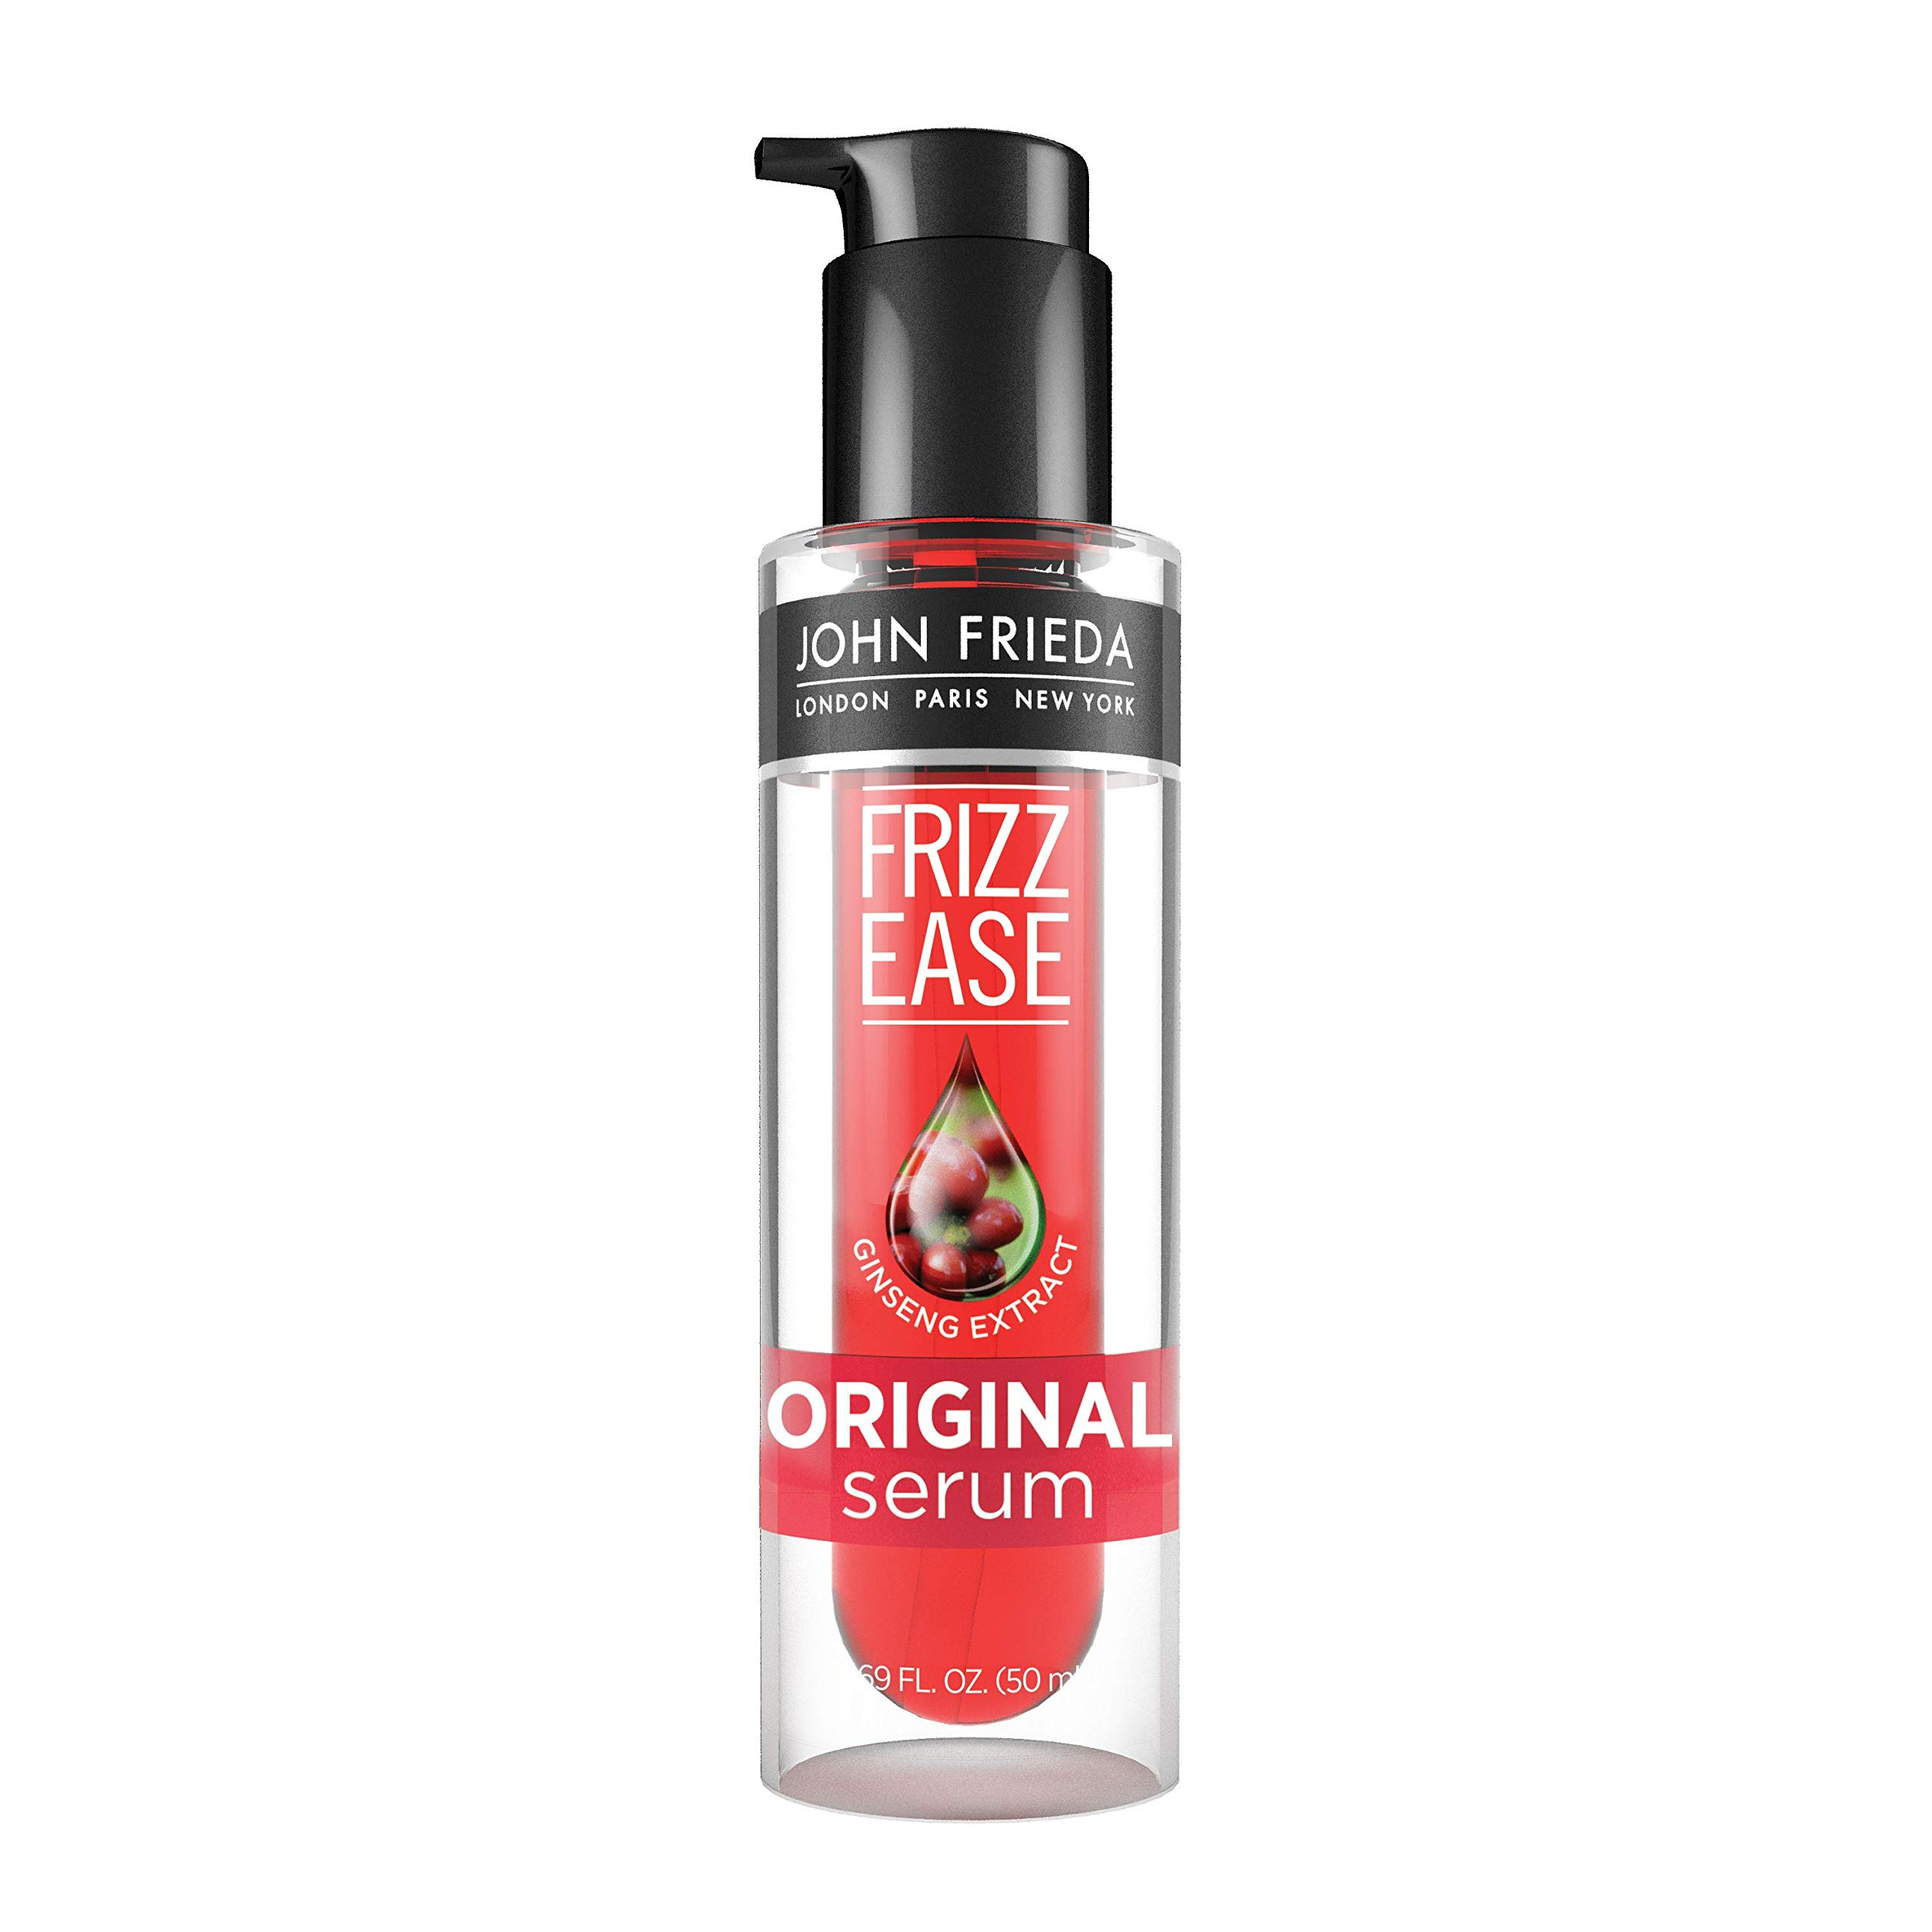 Frizz-Ease Hair Serum Original Formula, Anti-Frizz Heat Protecting, 1.69 oz, Infused with Silk Protein